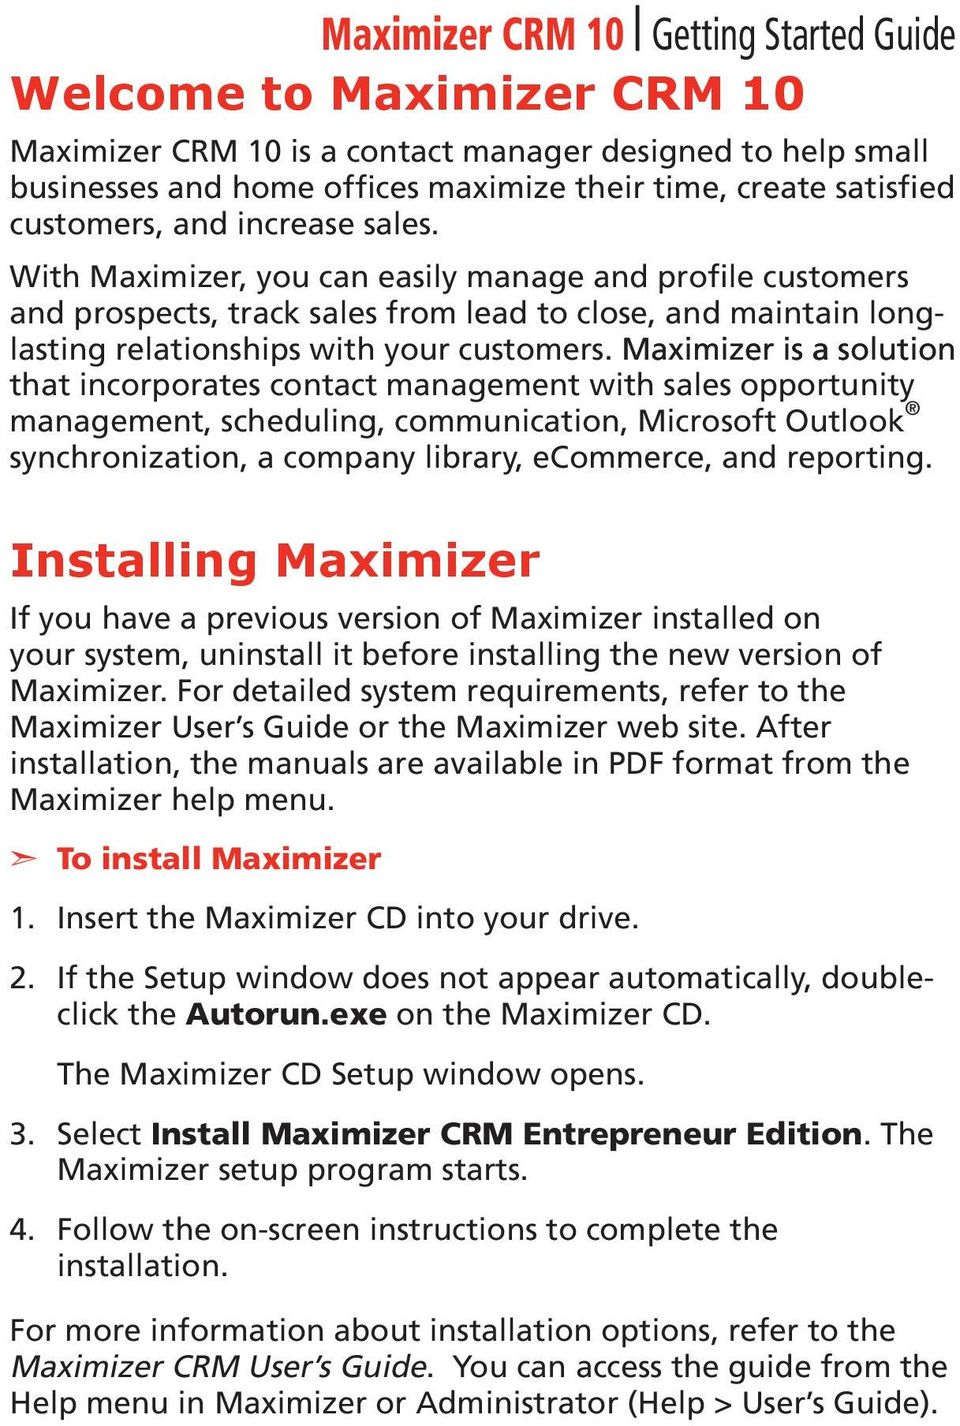 Maximizer is a solution that incorporates contact management with sales opportunity management, scheduling, communication, Microsoft Outlook synchronization, a company library, ecommerce, and